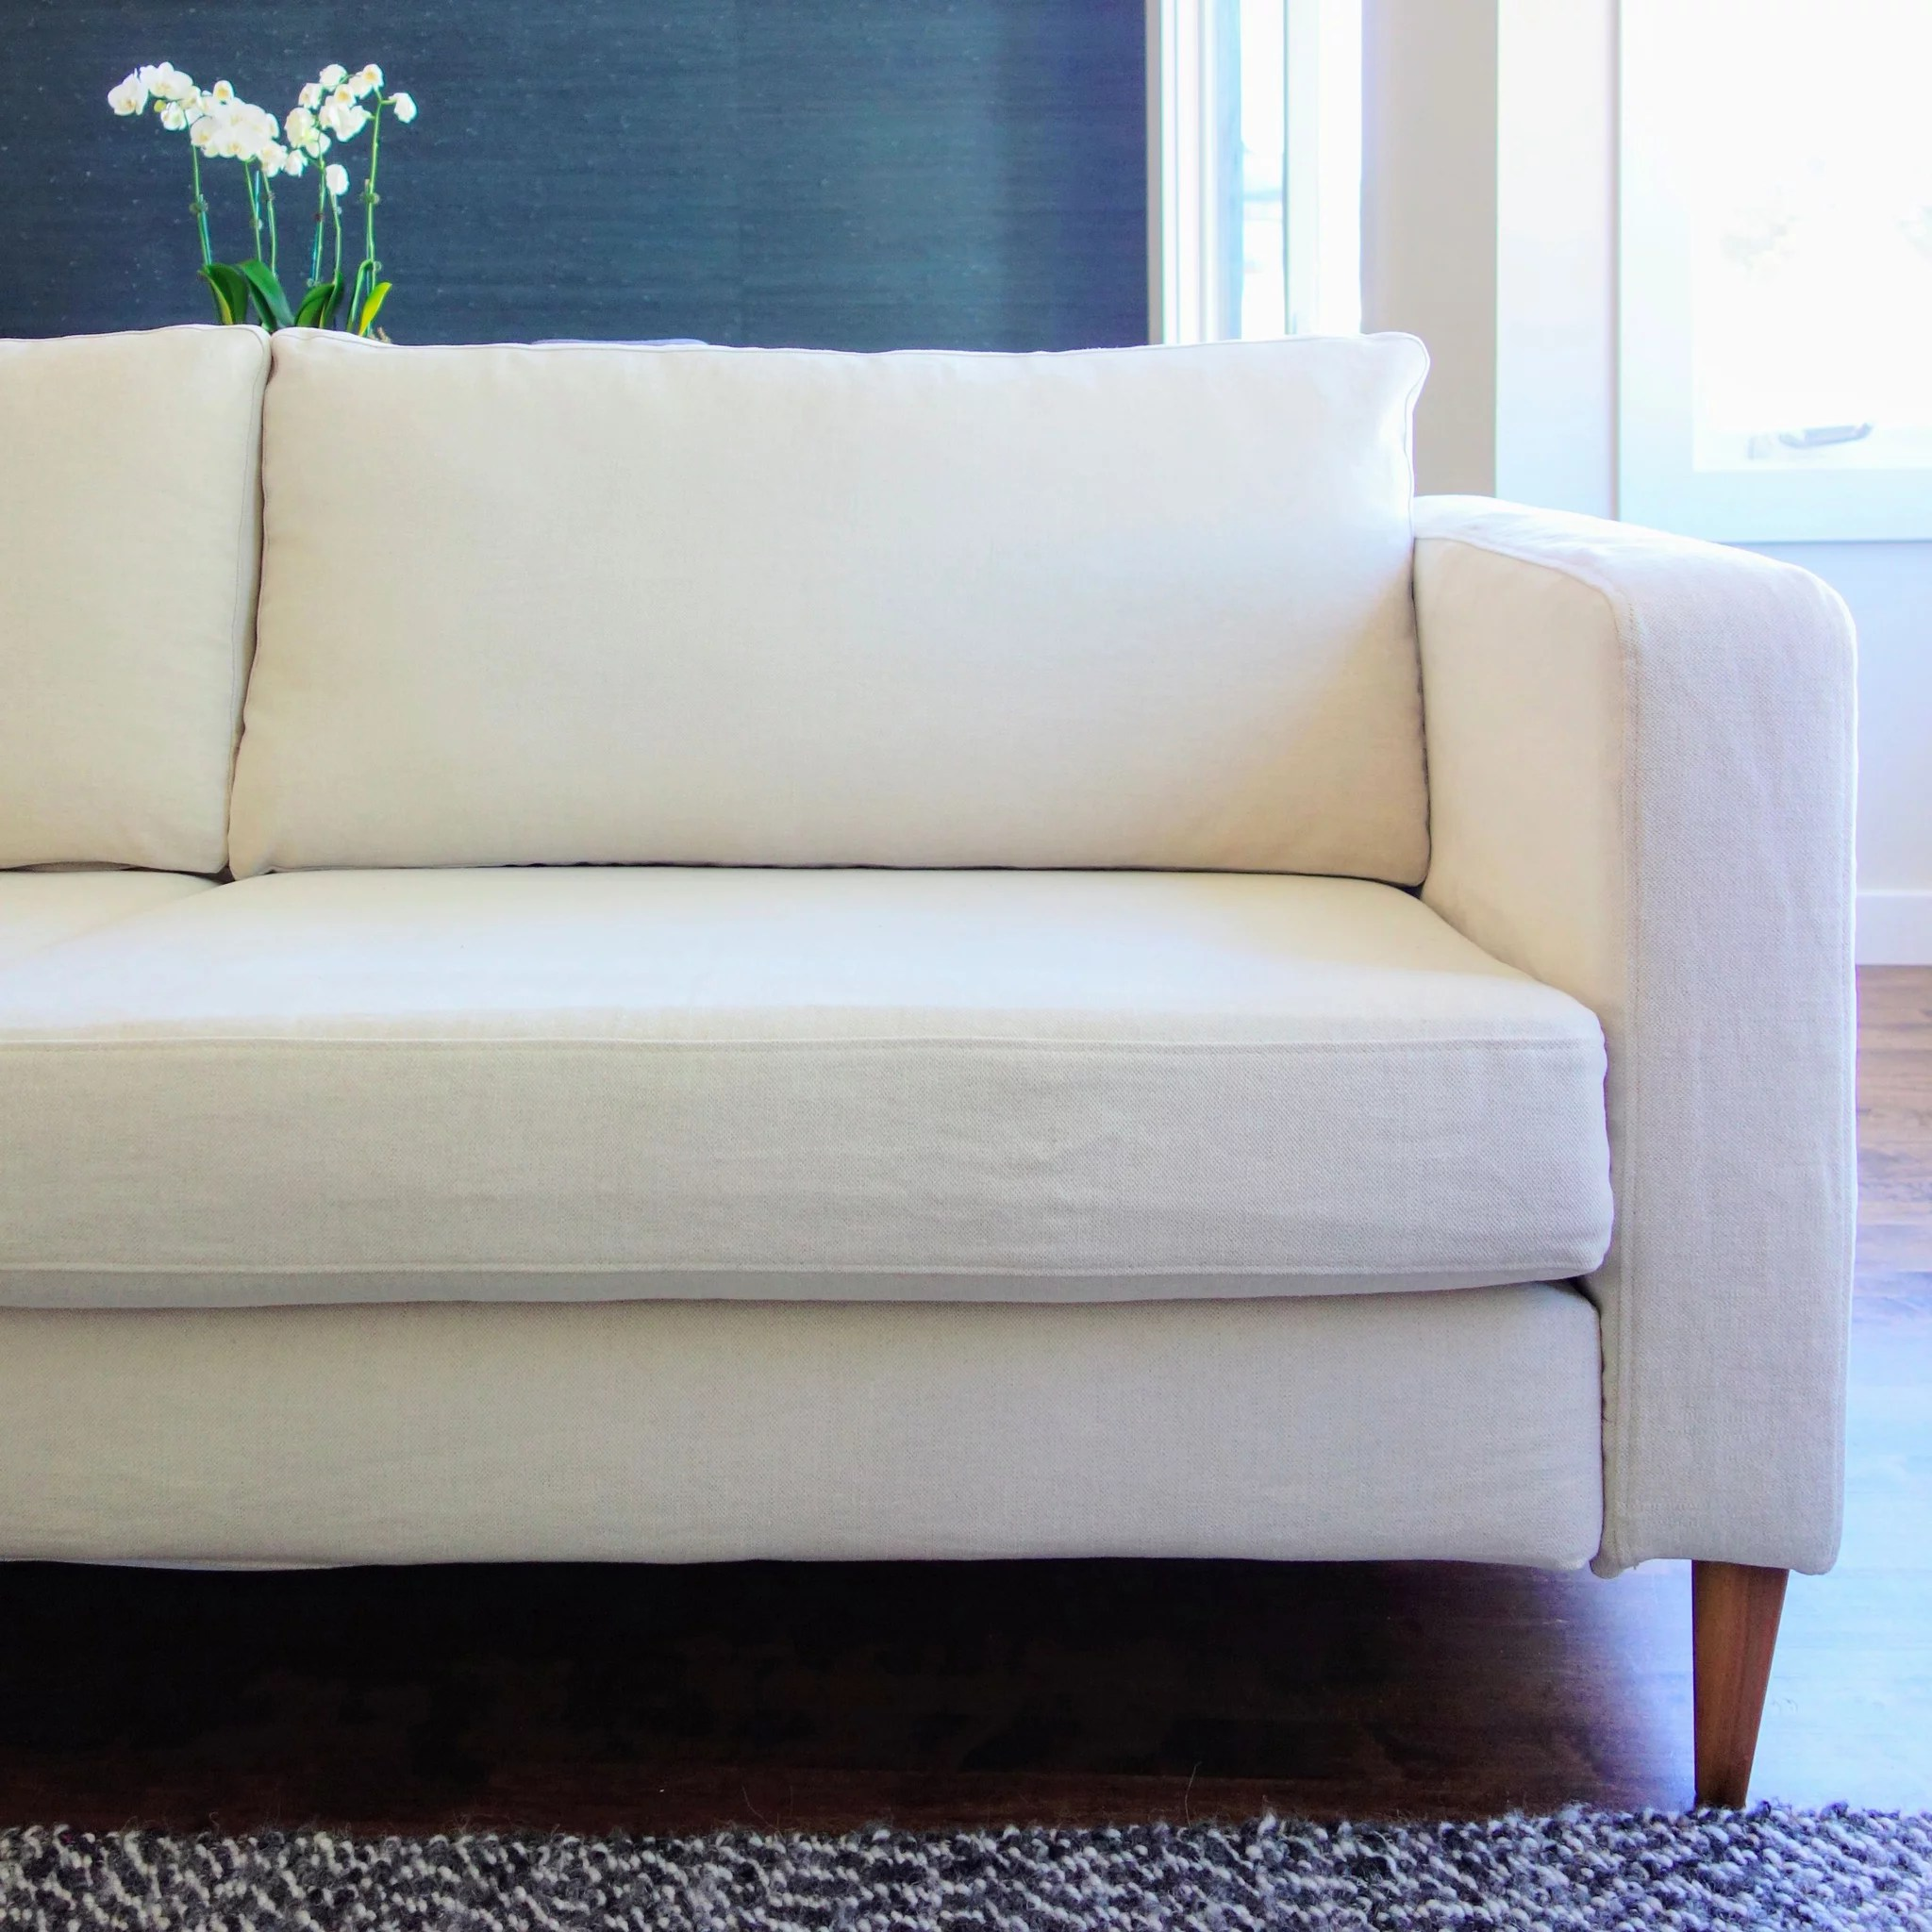 Couch Ikea Ikea Couch Covers Makeover Popsugar Home